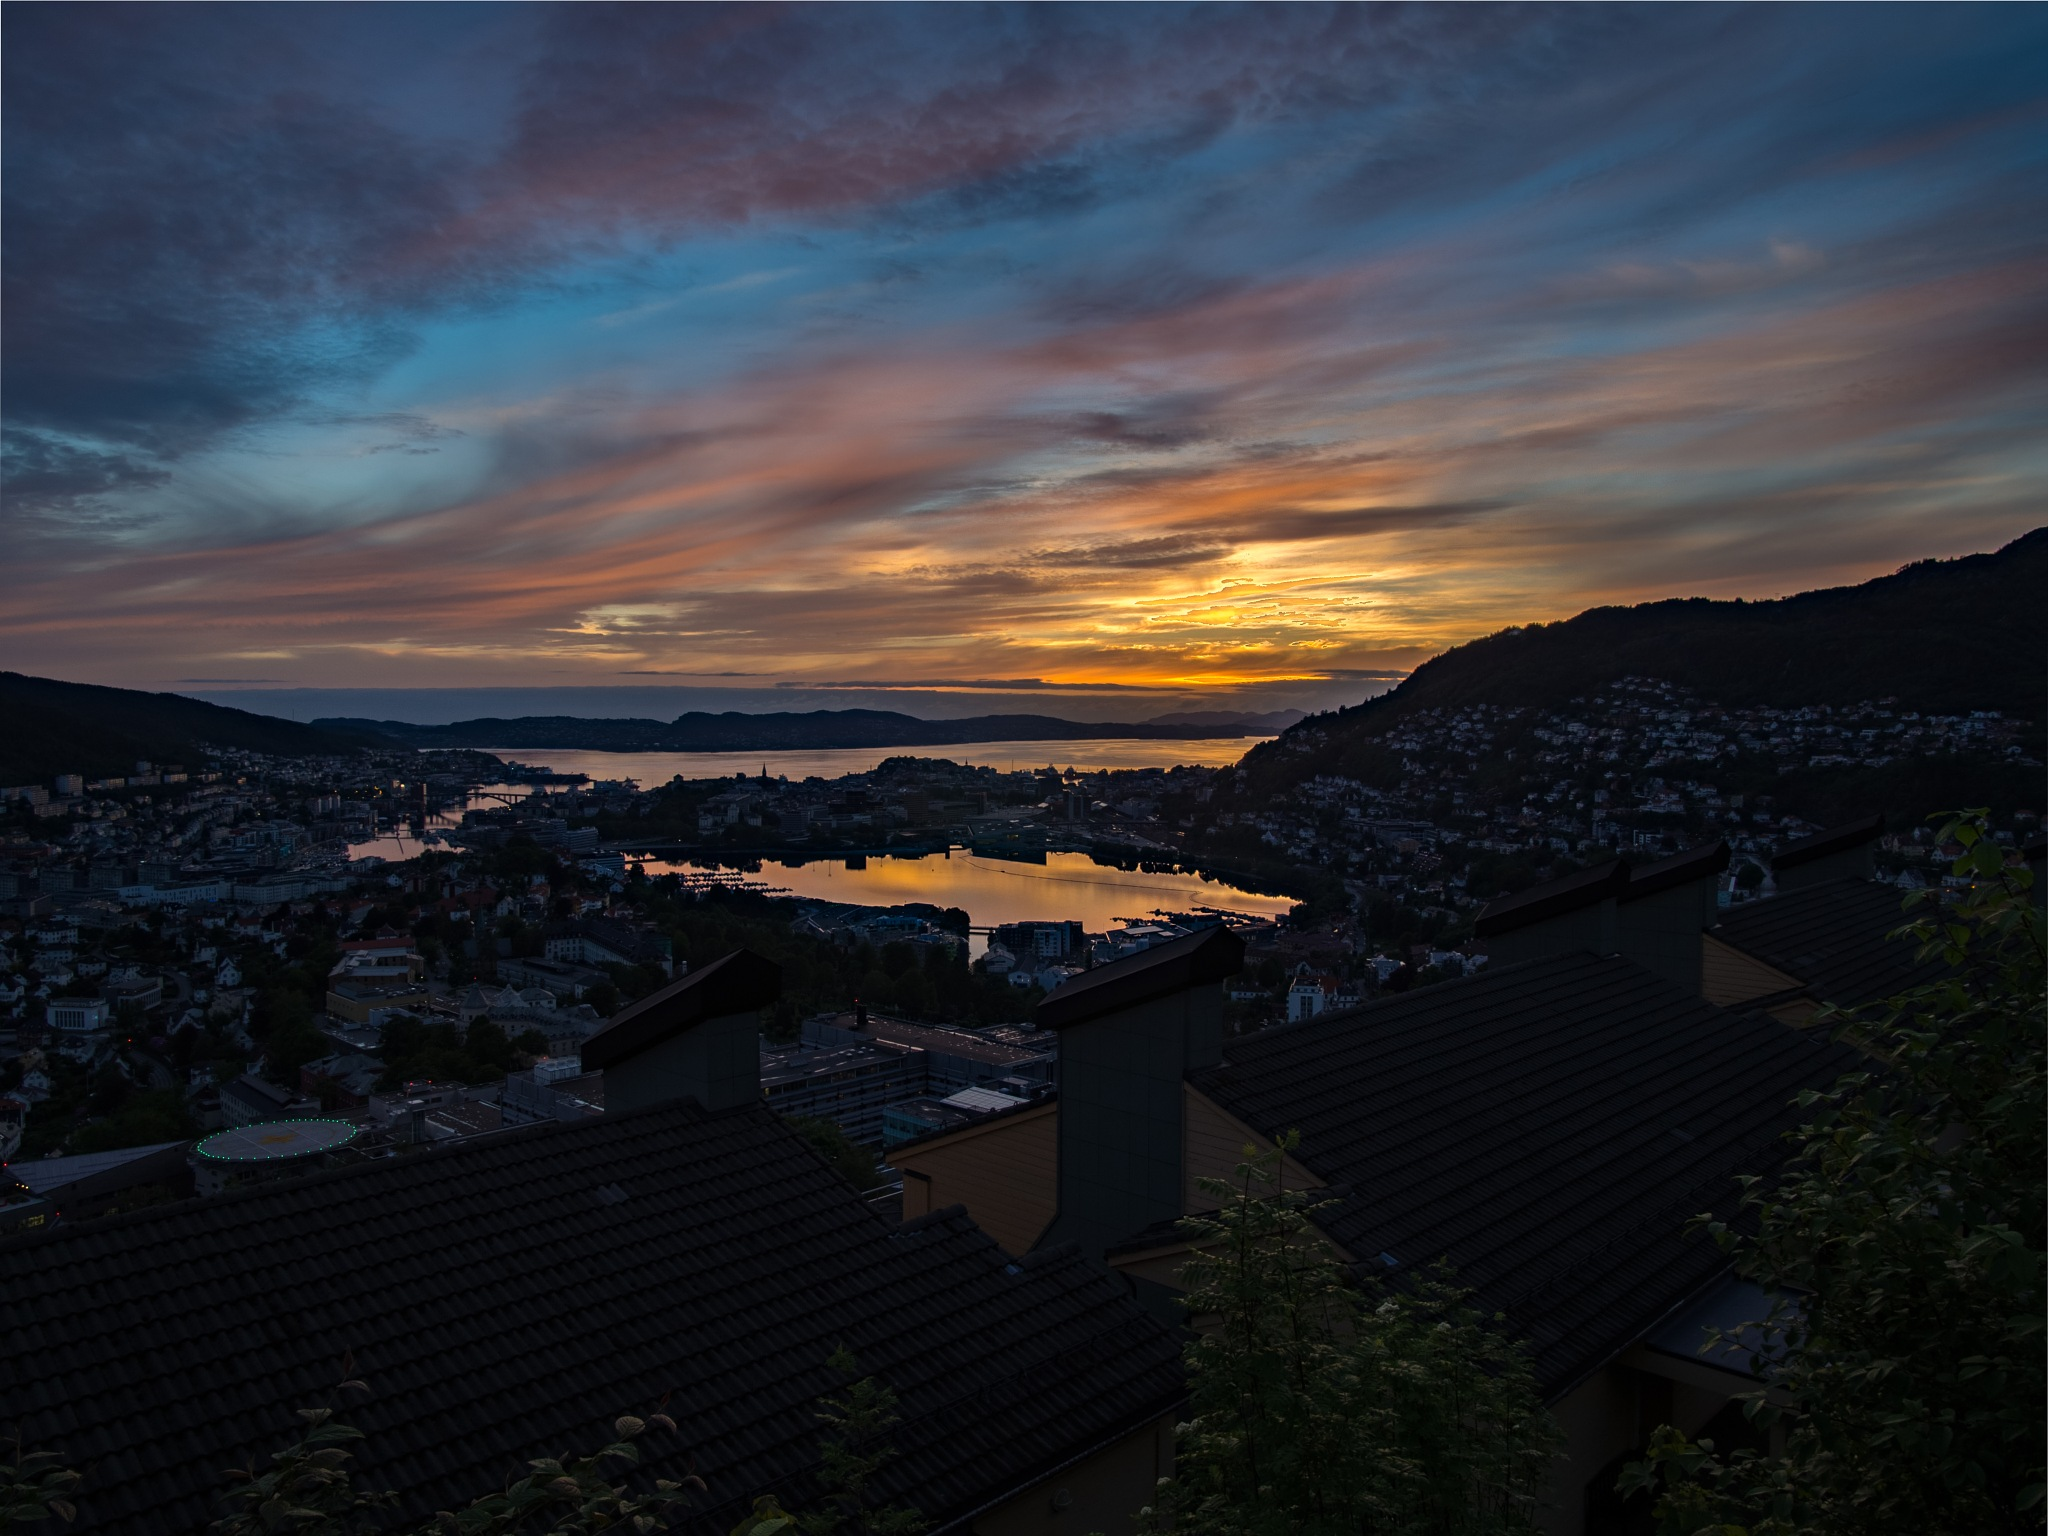 HDR Sunset over Bergen by Steven Harrison Snoots